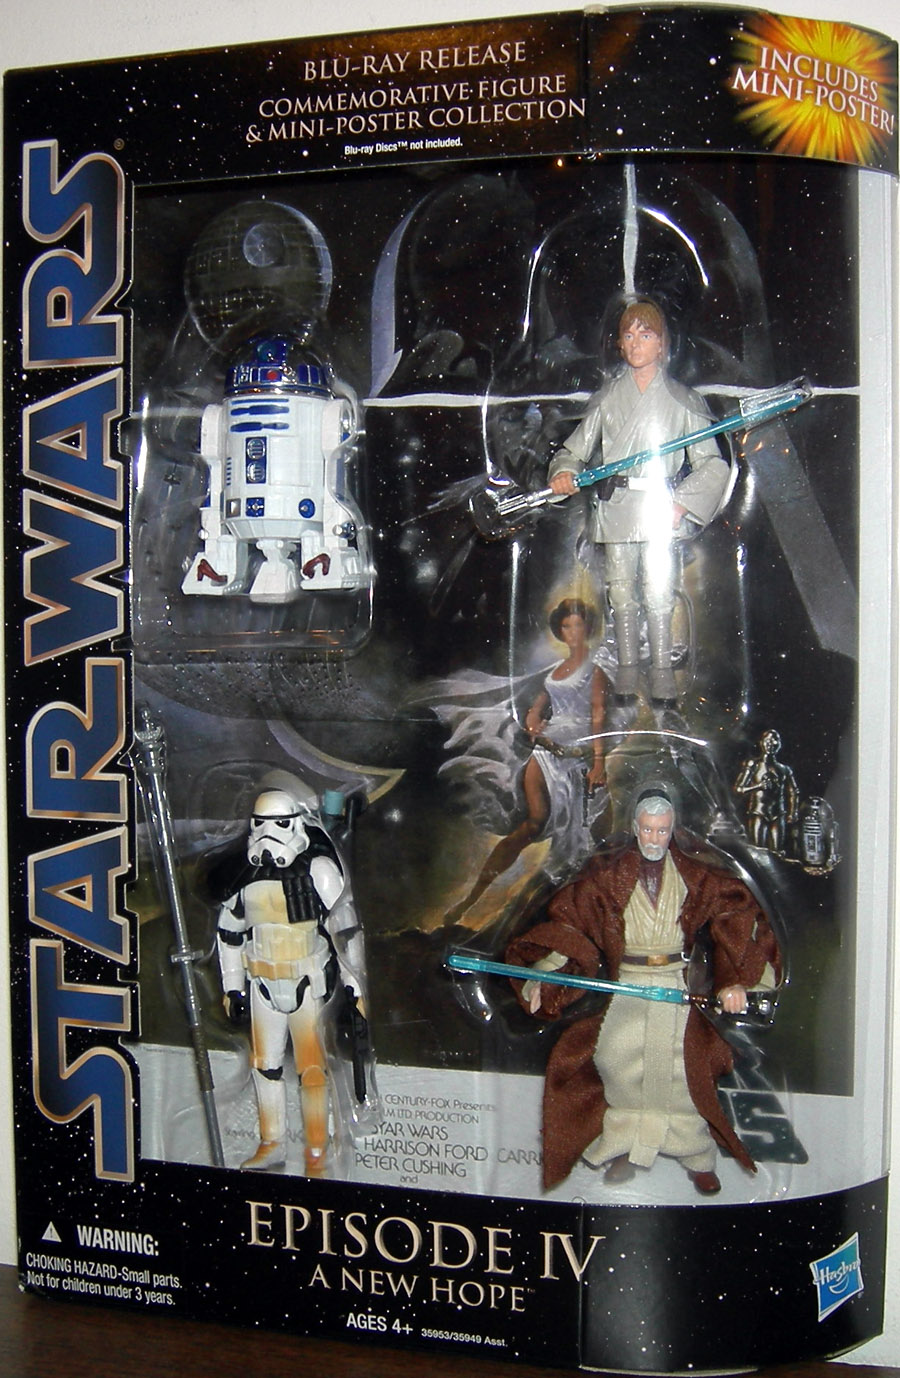 Star Wars Blu Ray Release Commemorative Action Figures Mini Poster Collection Episode Iv New Hope Set